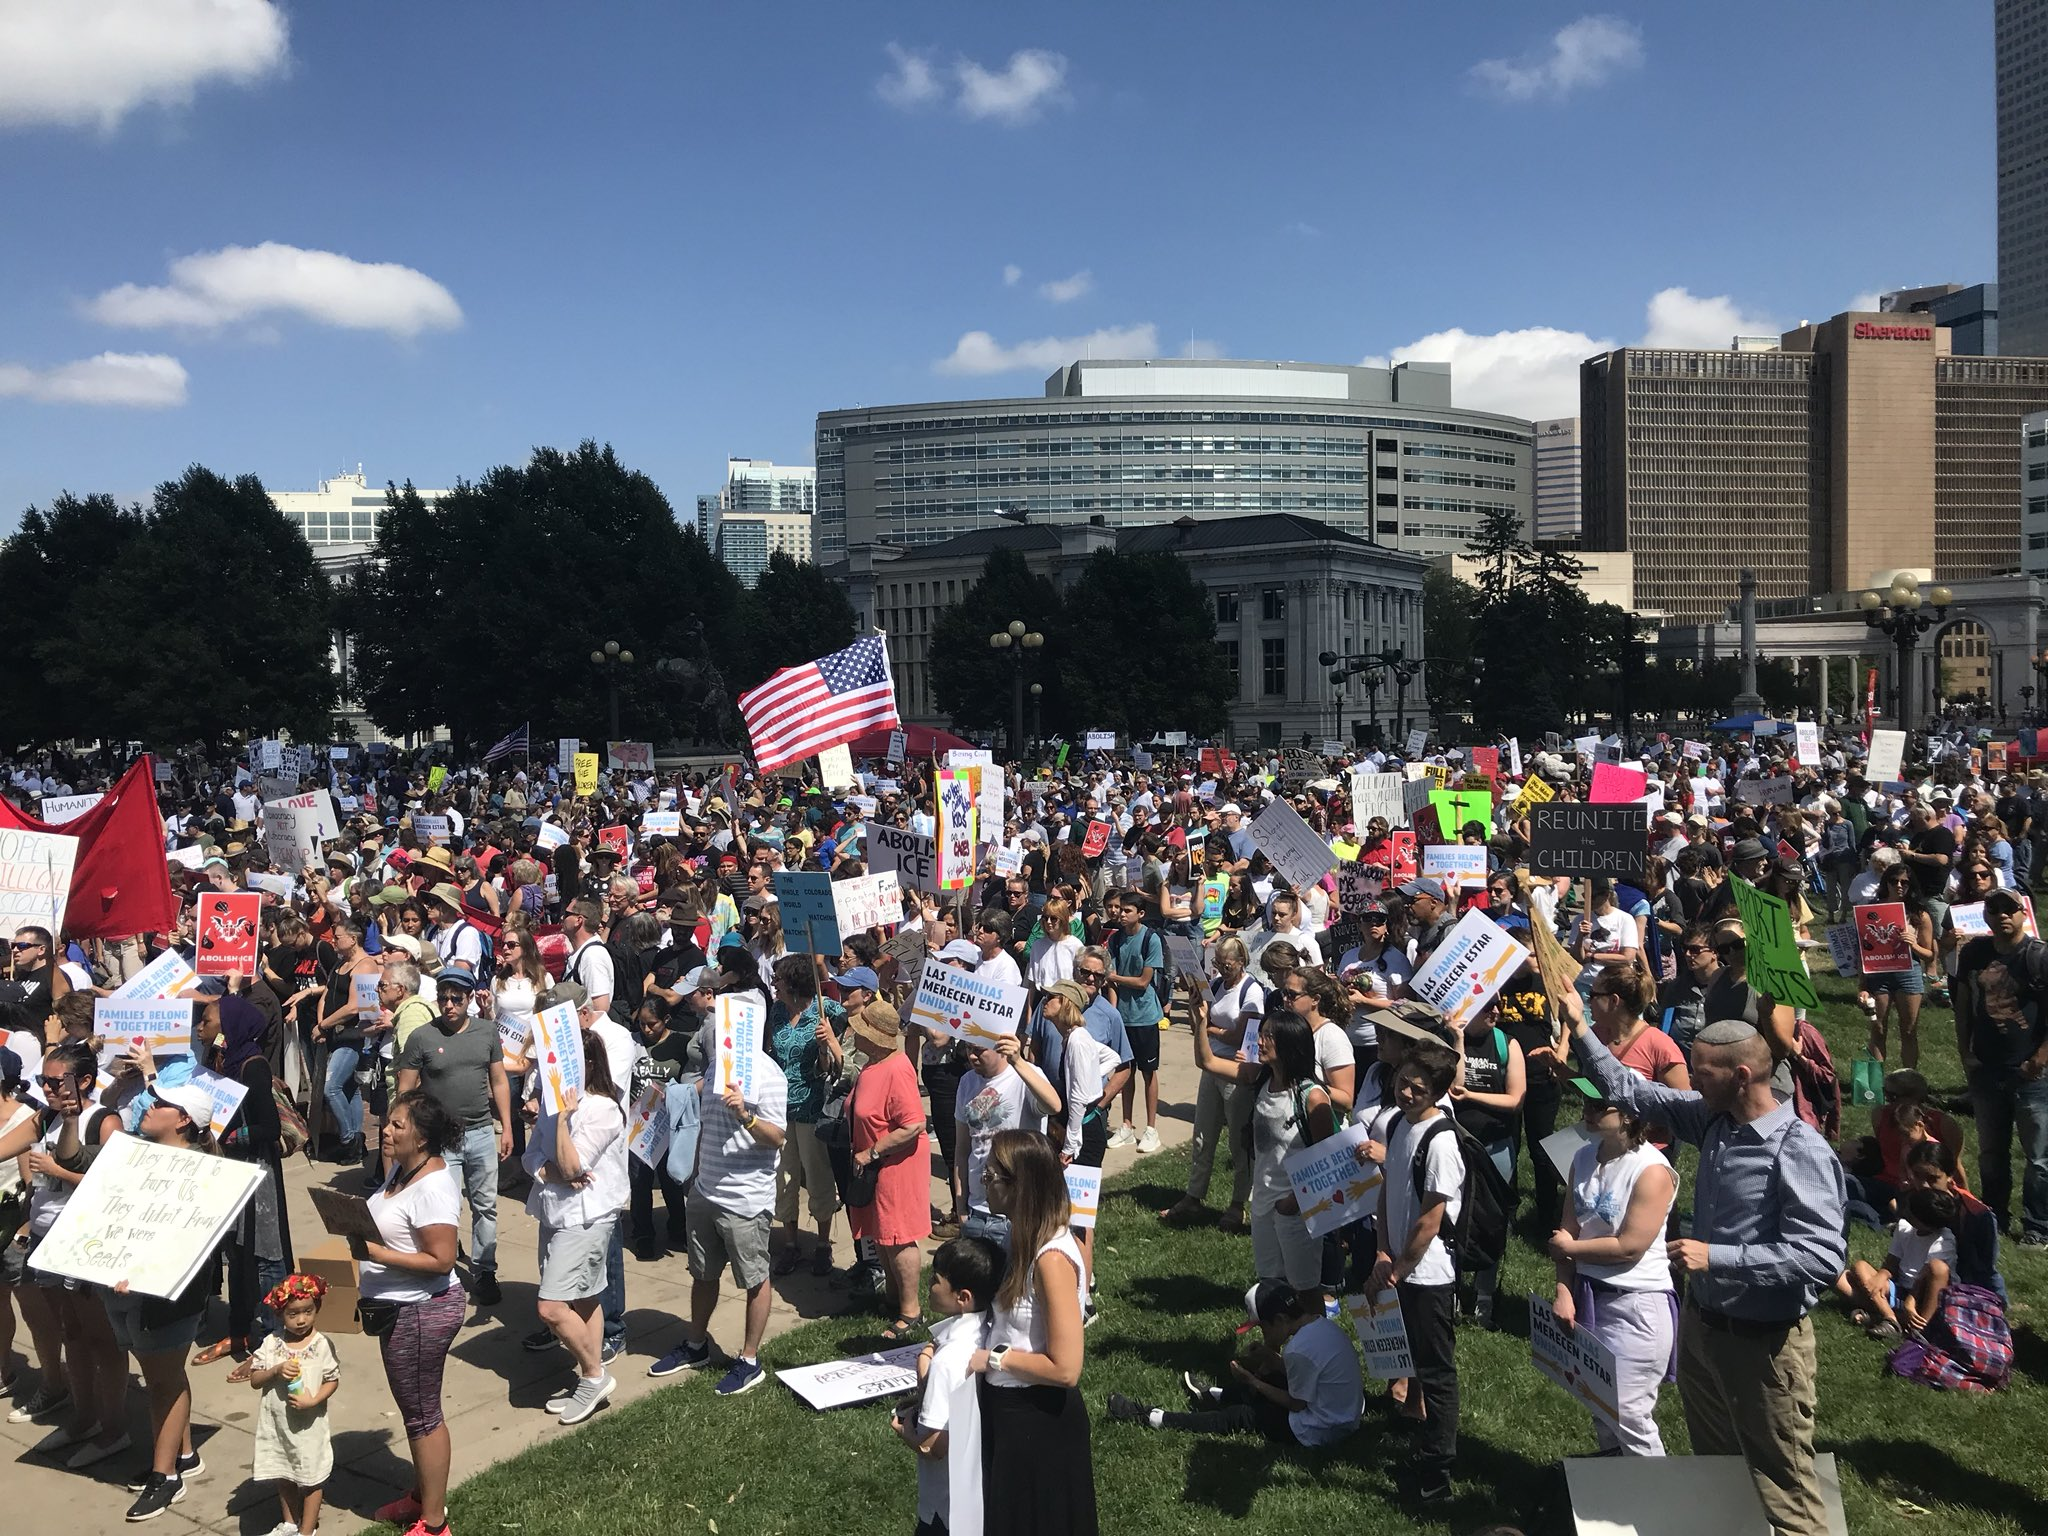 <p>Thousands of people pack Civic Center Park in Denver to protest the detention of immigrant families on Saturday, June 30, 2018.</p>